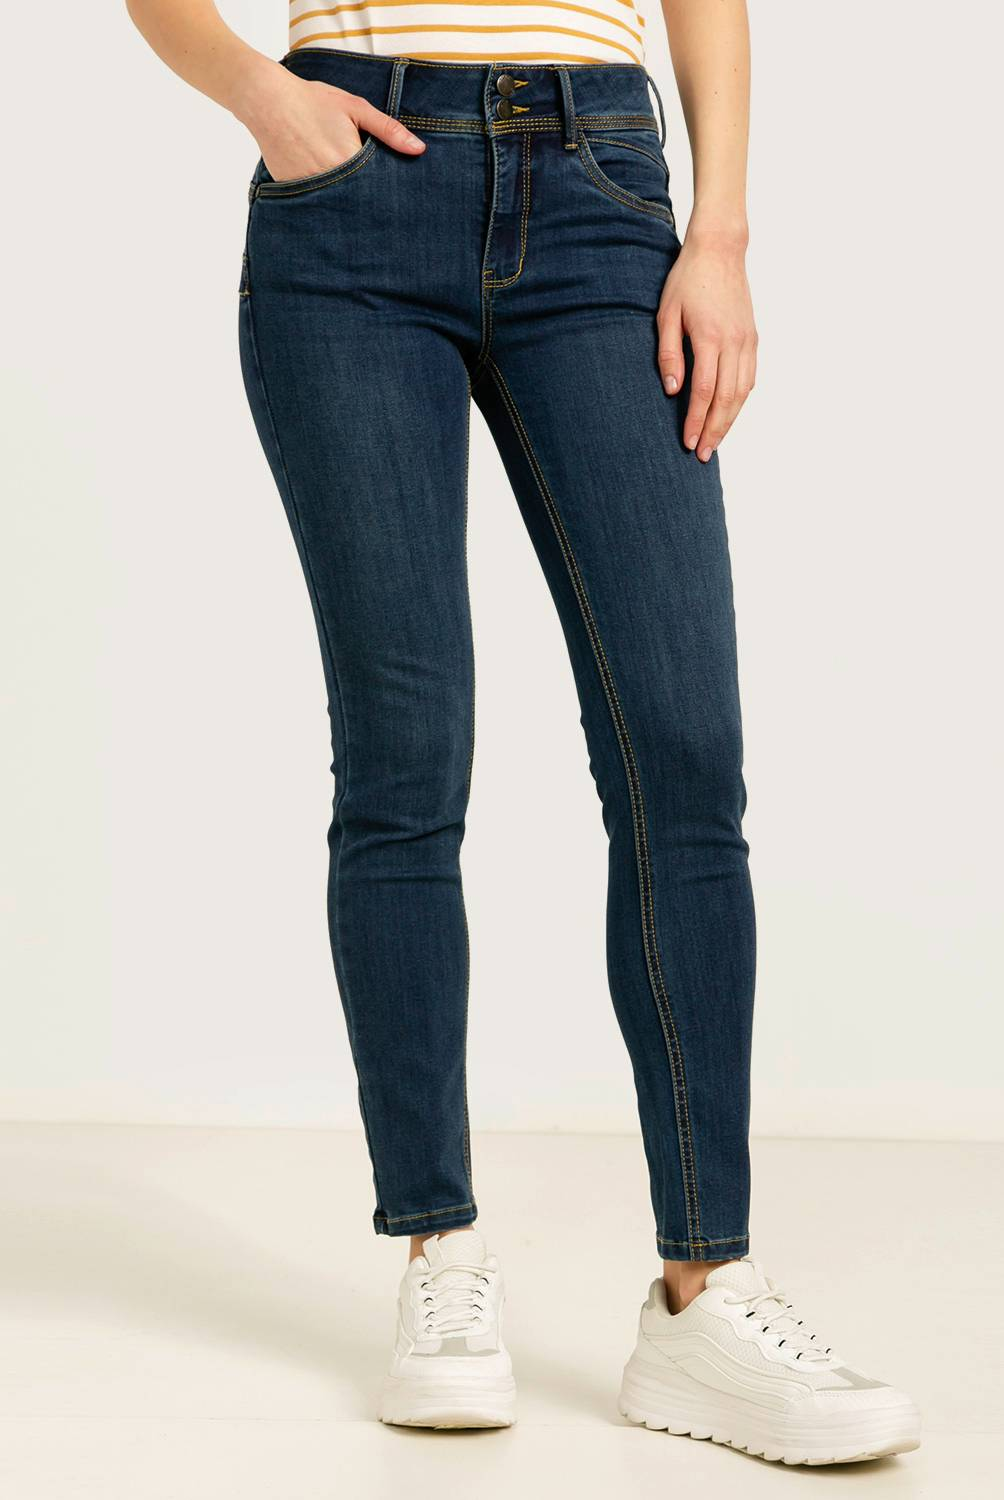 ELLE - Jeans Skinny Push Up Mujer